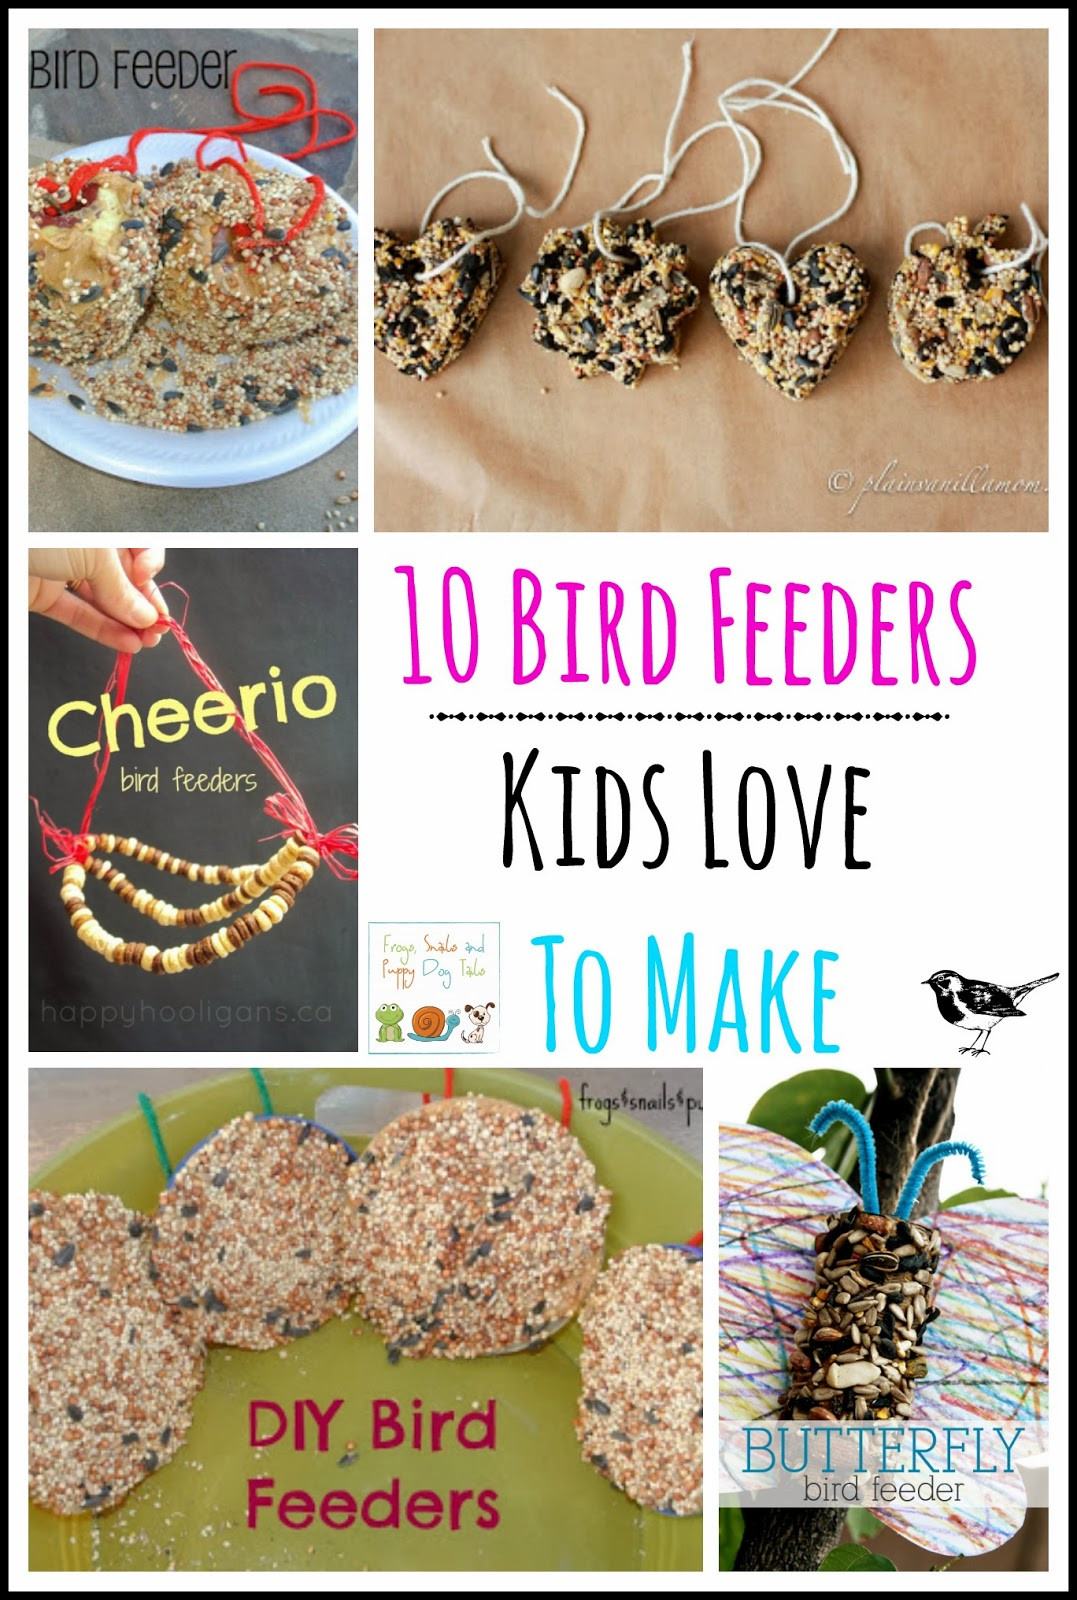 Best ideas about DIY Bird Feeders For Kids . Save or Pin 10 Bird Feeders Kids Love To Make FSPDT Now.